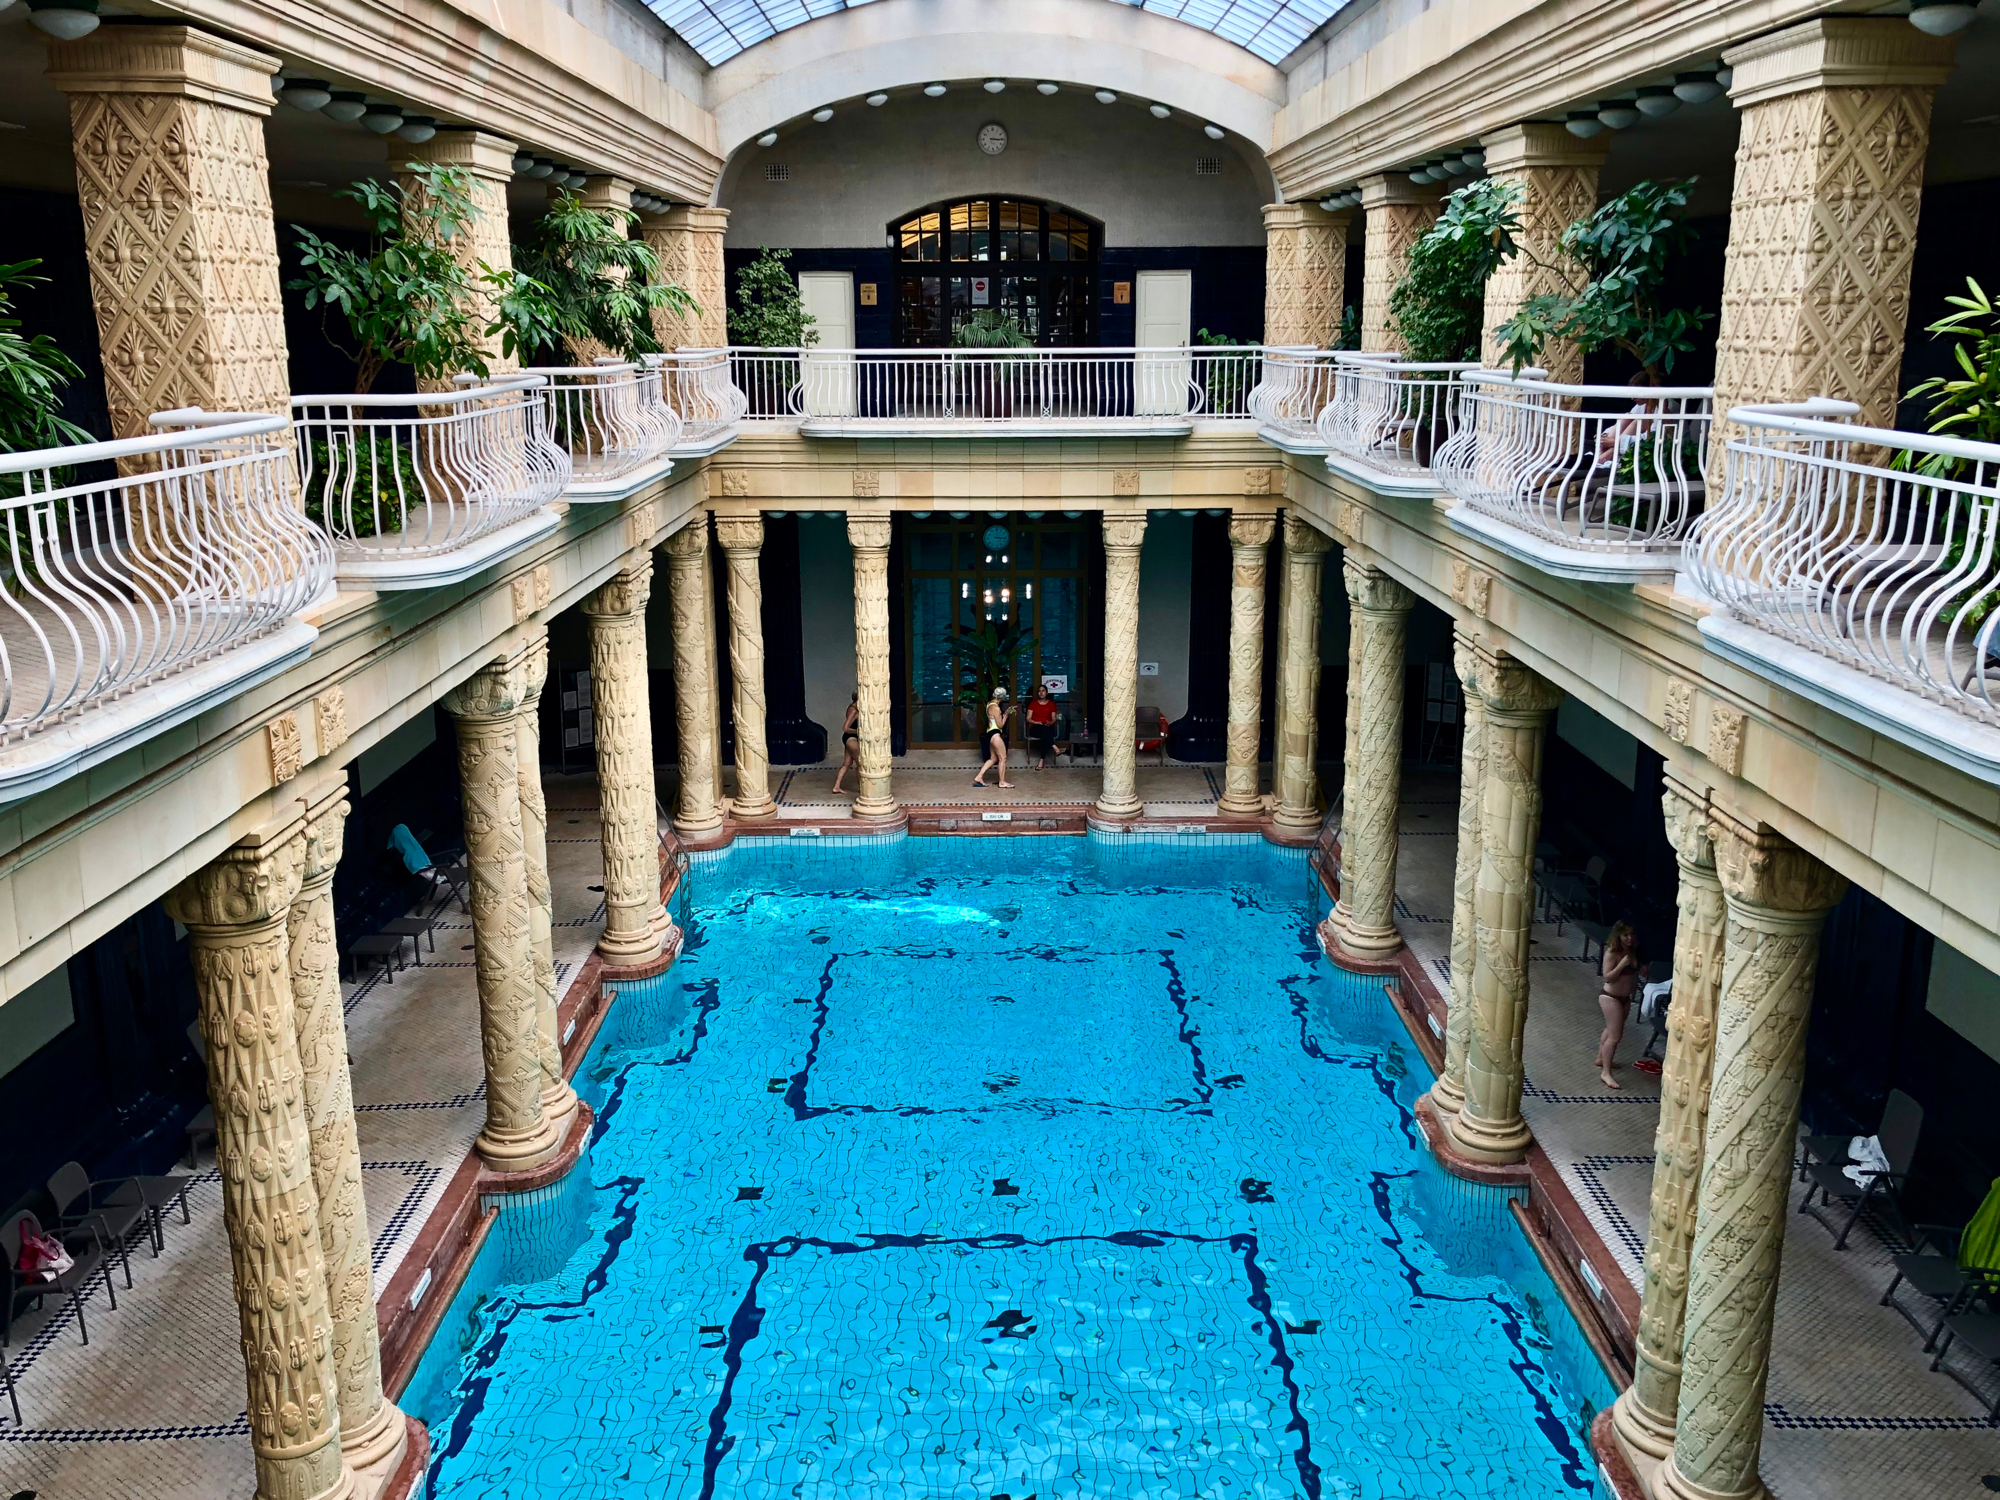 One of the many pools in Gellért Bath as seen from the dining area